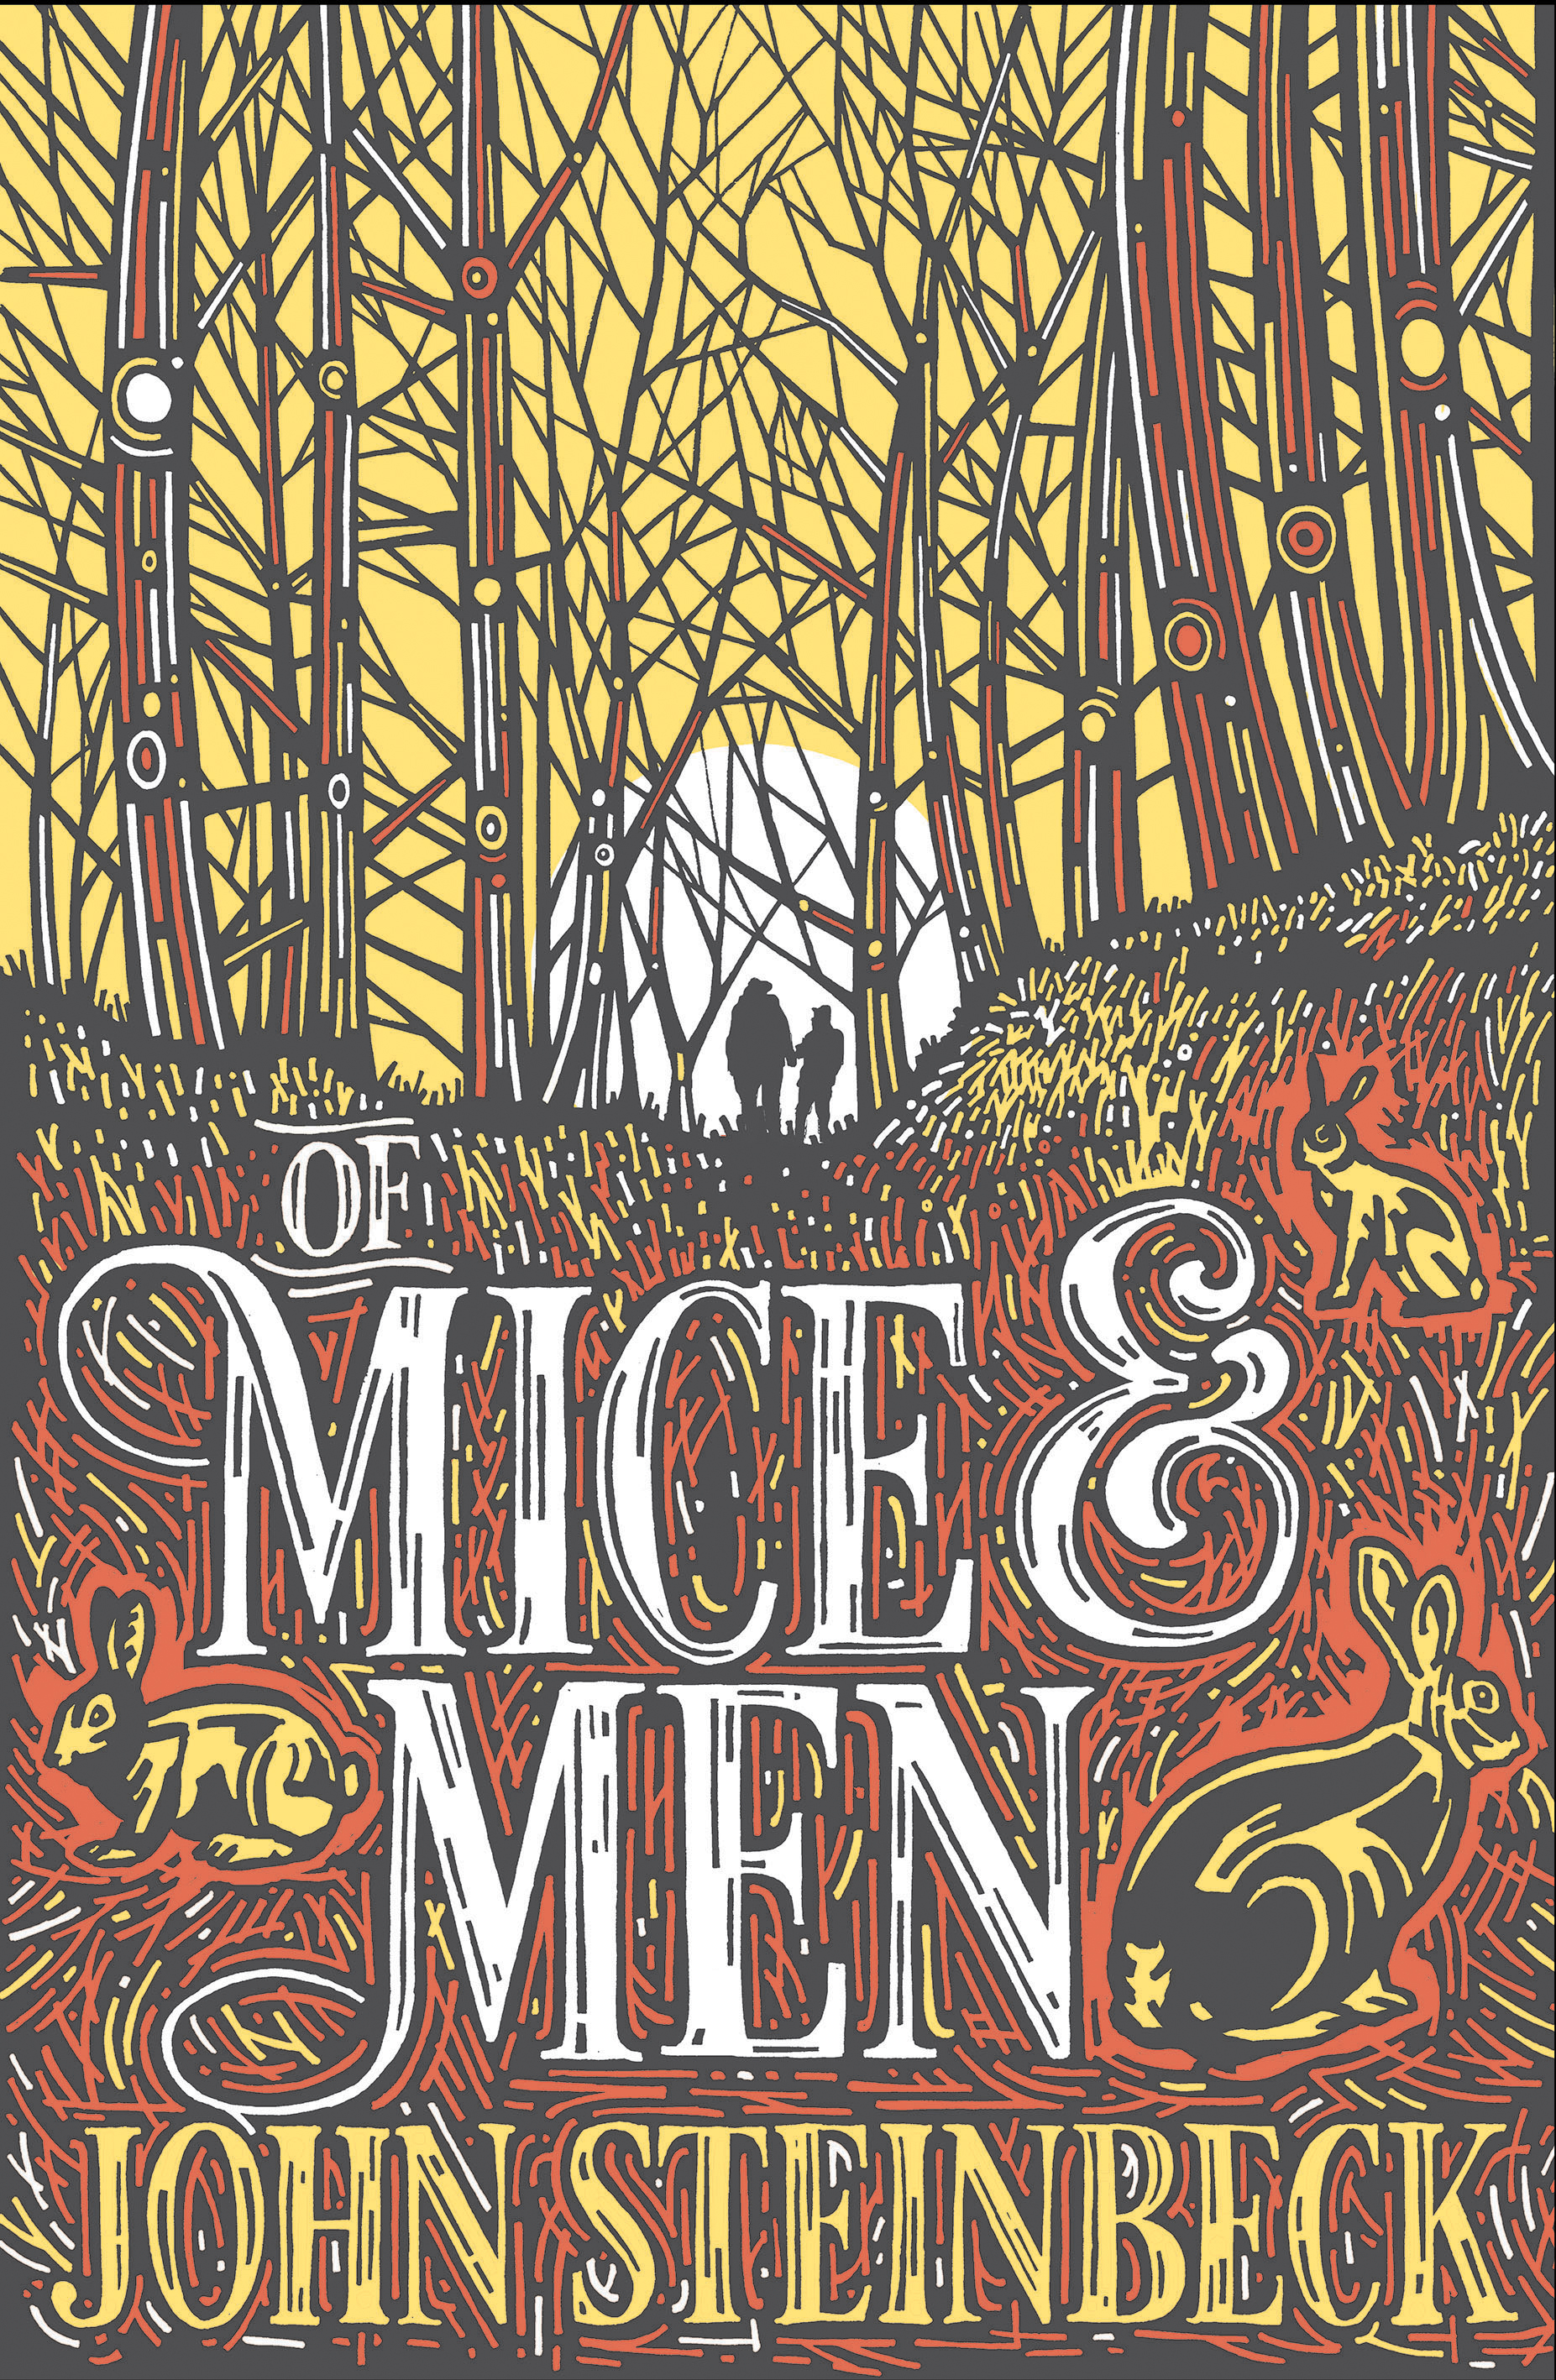 of mice and men by steinbeck Buy a cheap copy of of mice and men book by john steinbeck they are an unlikely pair: george is small and quick and dark of face lennie, a man of tremendous size, has the mind of a young child.